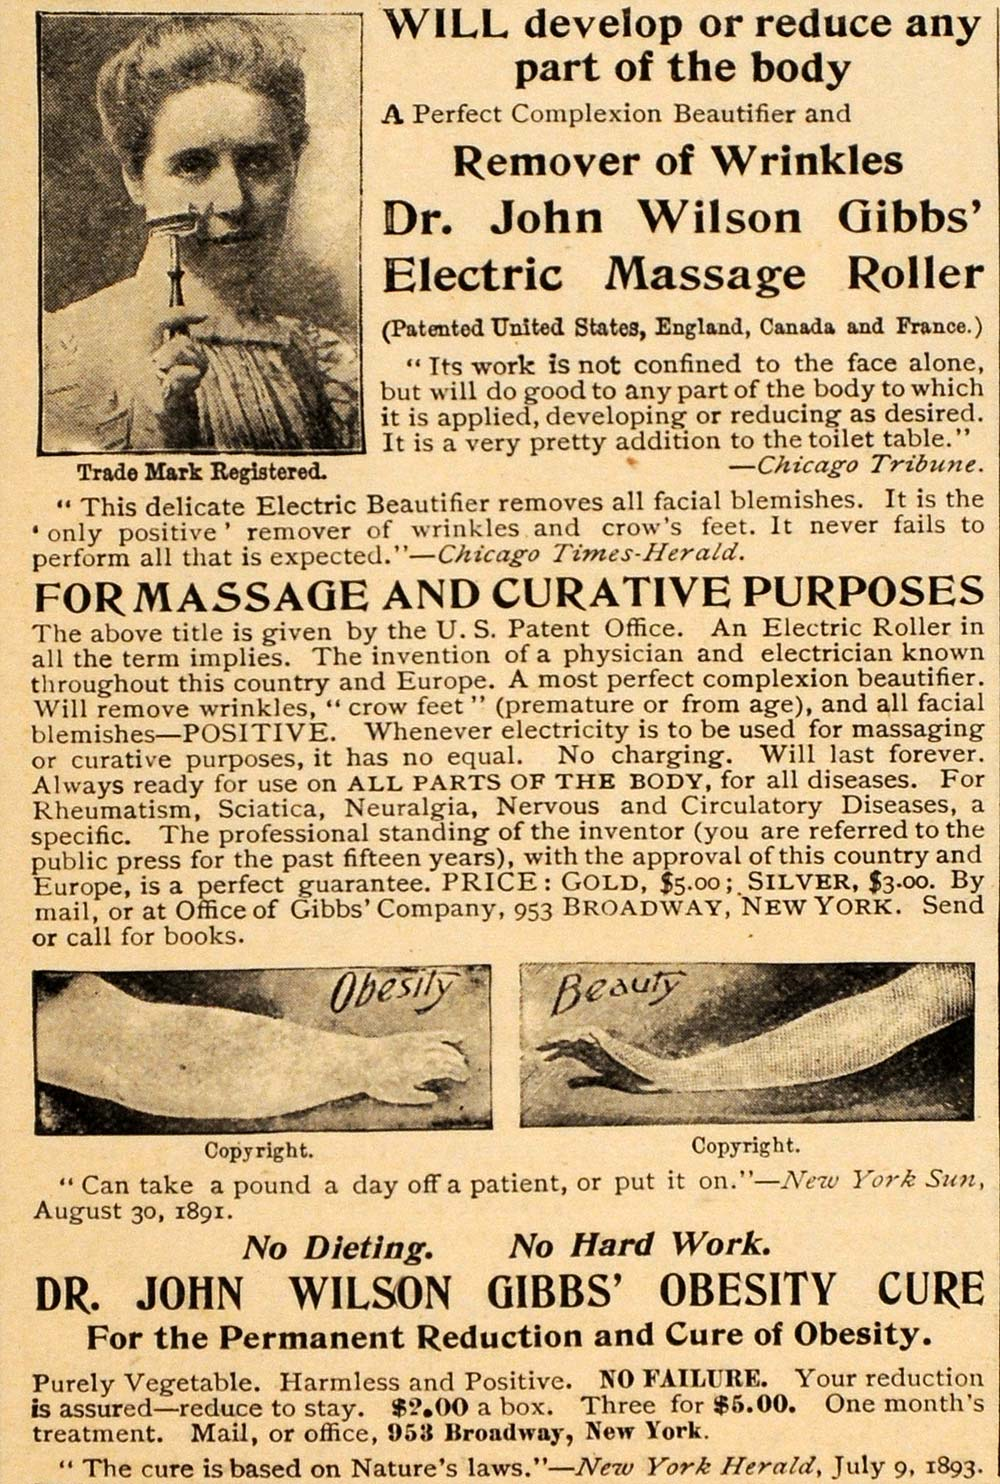 1898 Vintage Ad Massage Roller Obesity Cure Quackery - ORIGINAL OLD4A